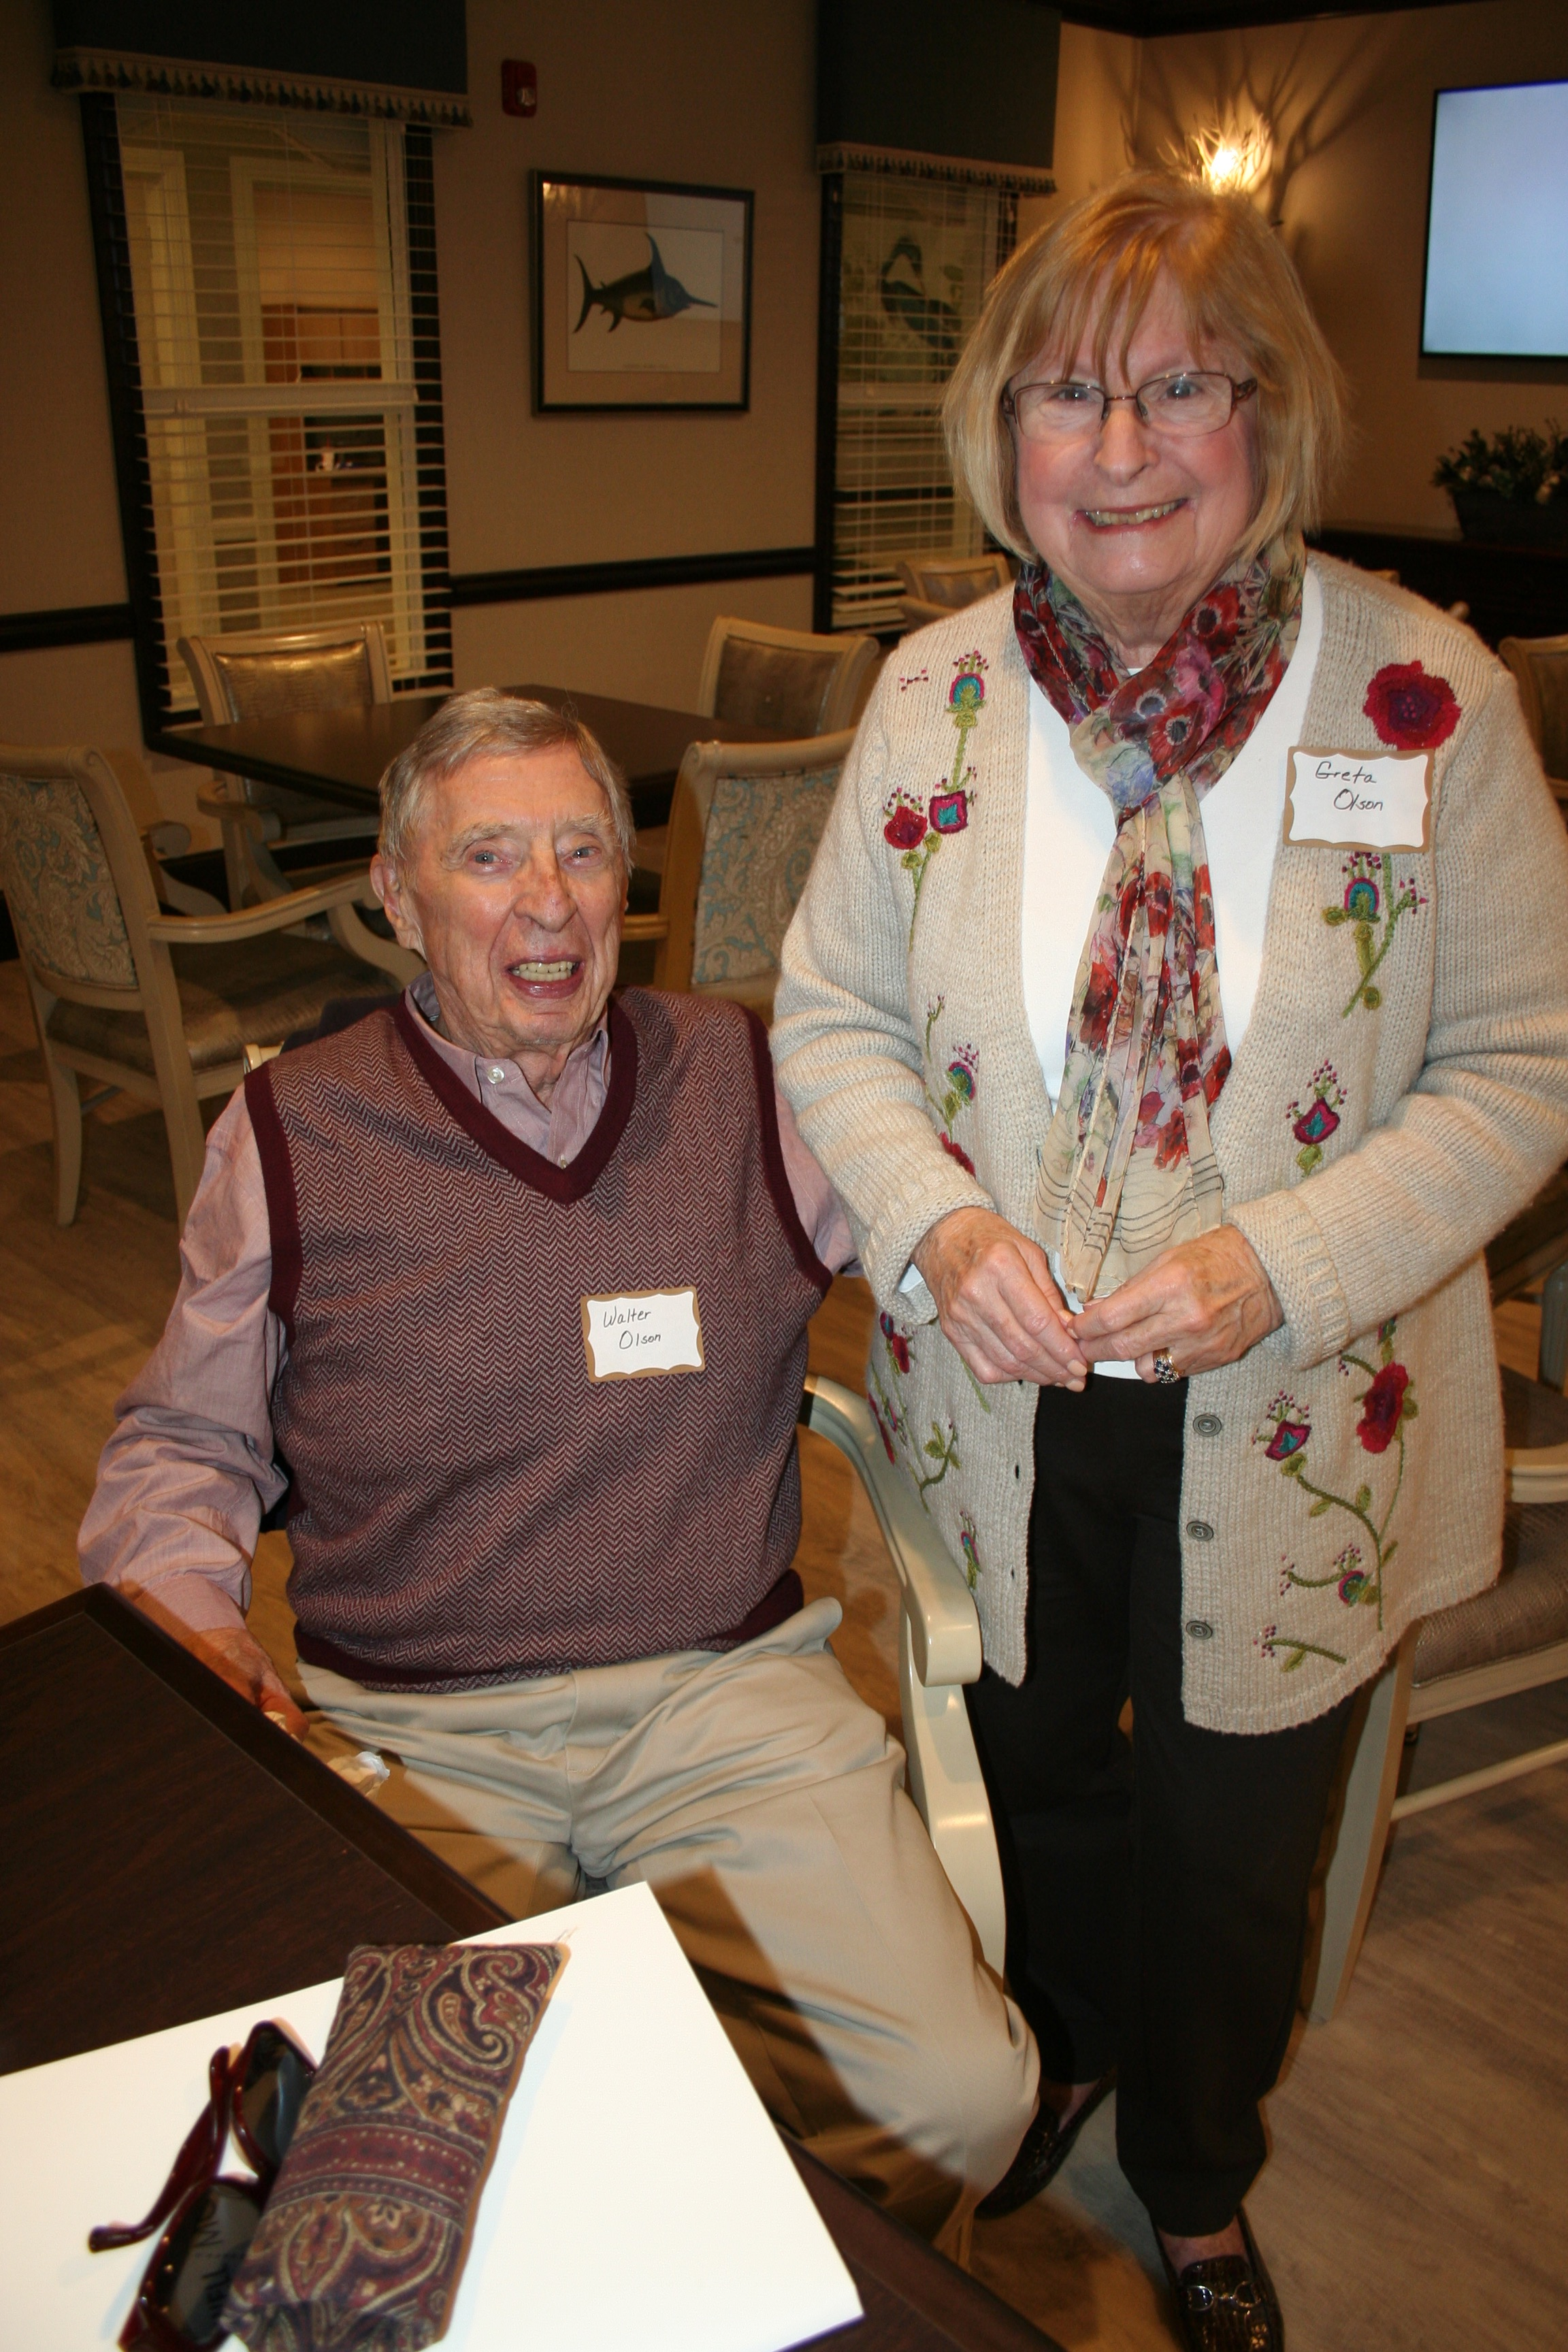 Daniel Island residents Walter and Greta Olson stopped in to learn more about the new facility.